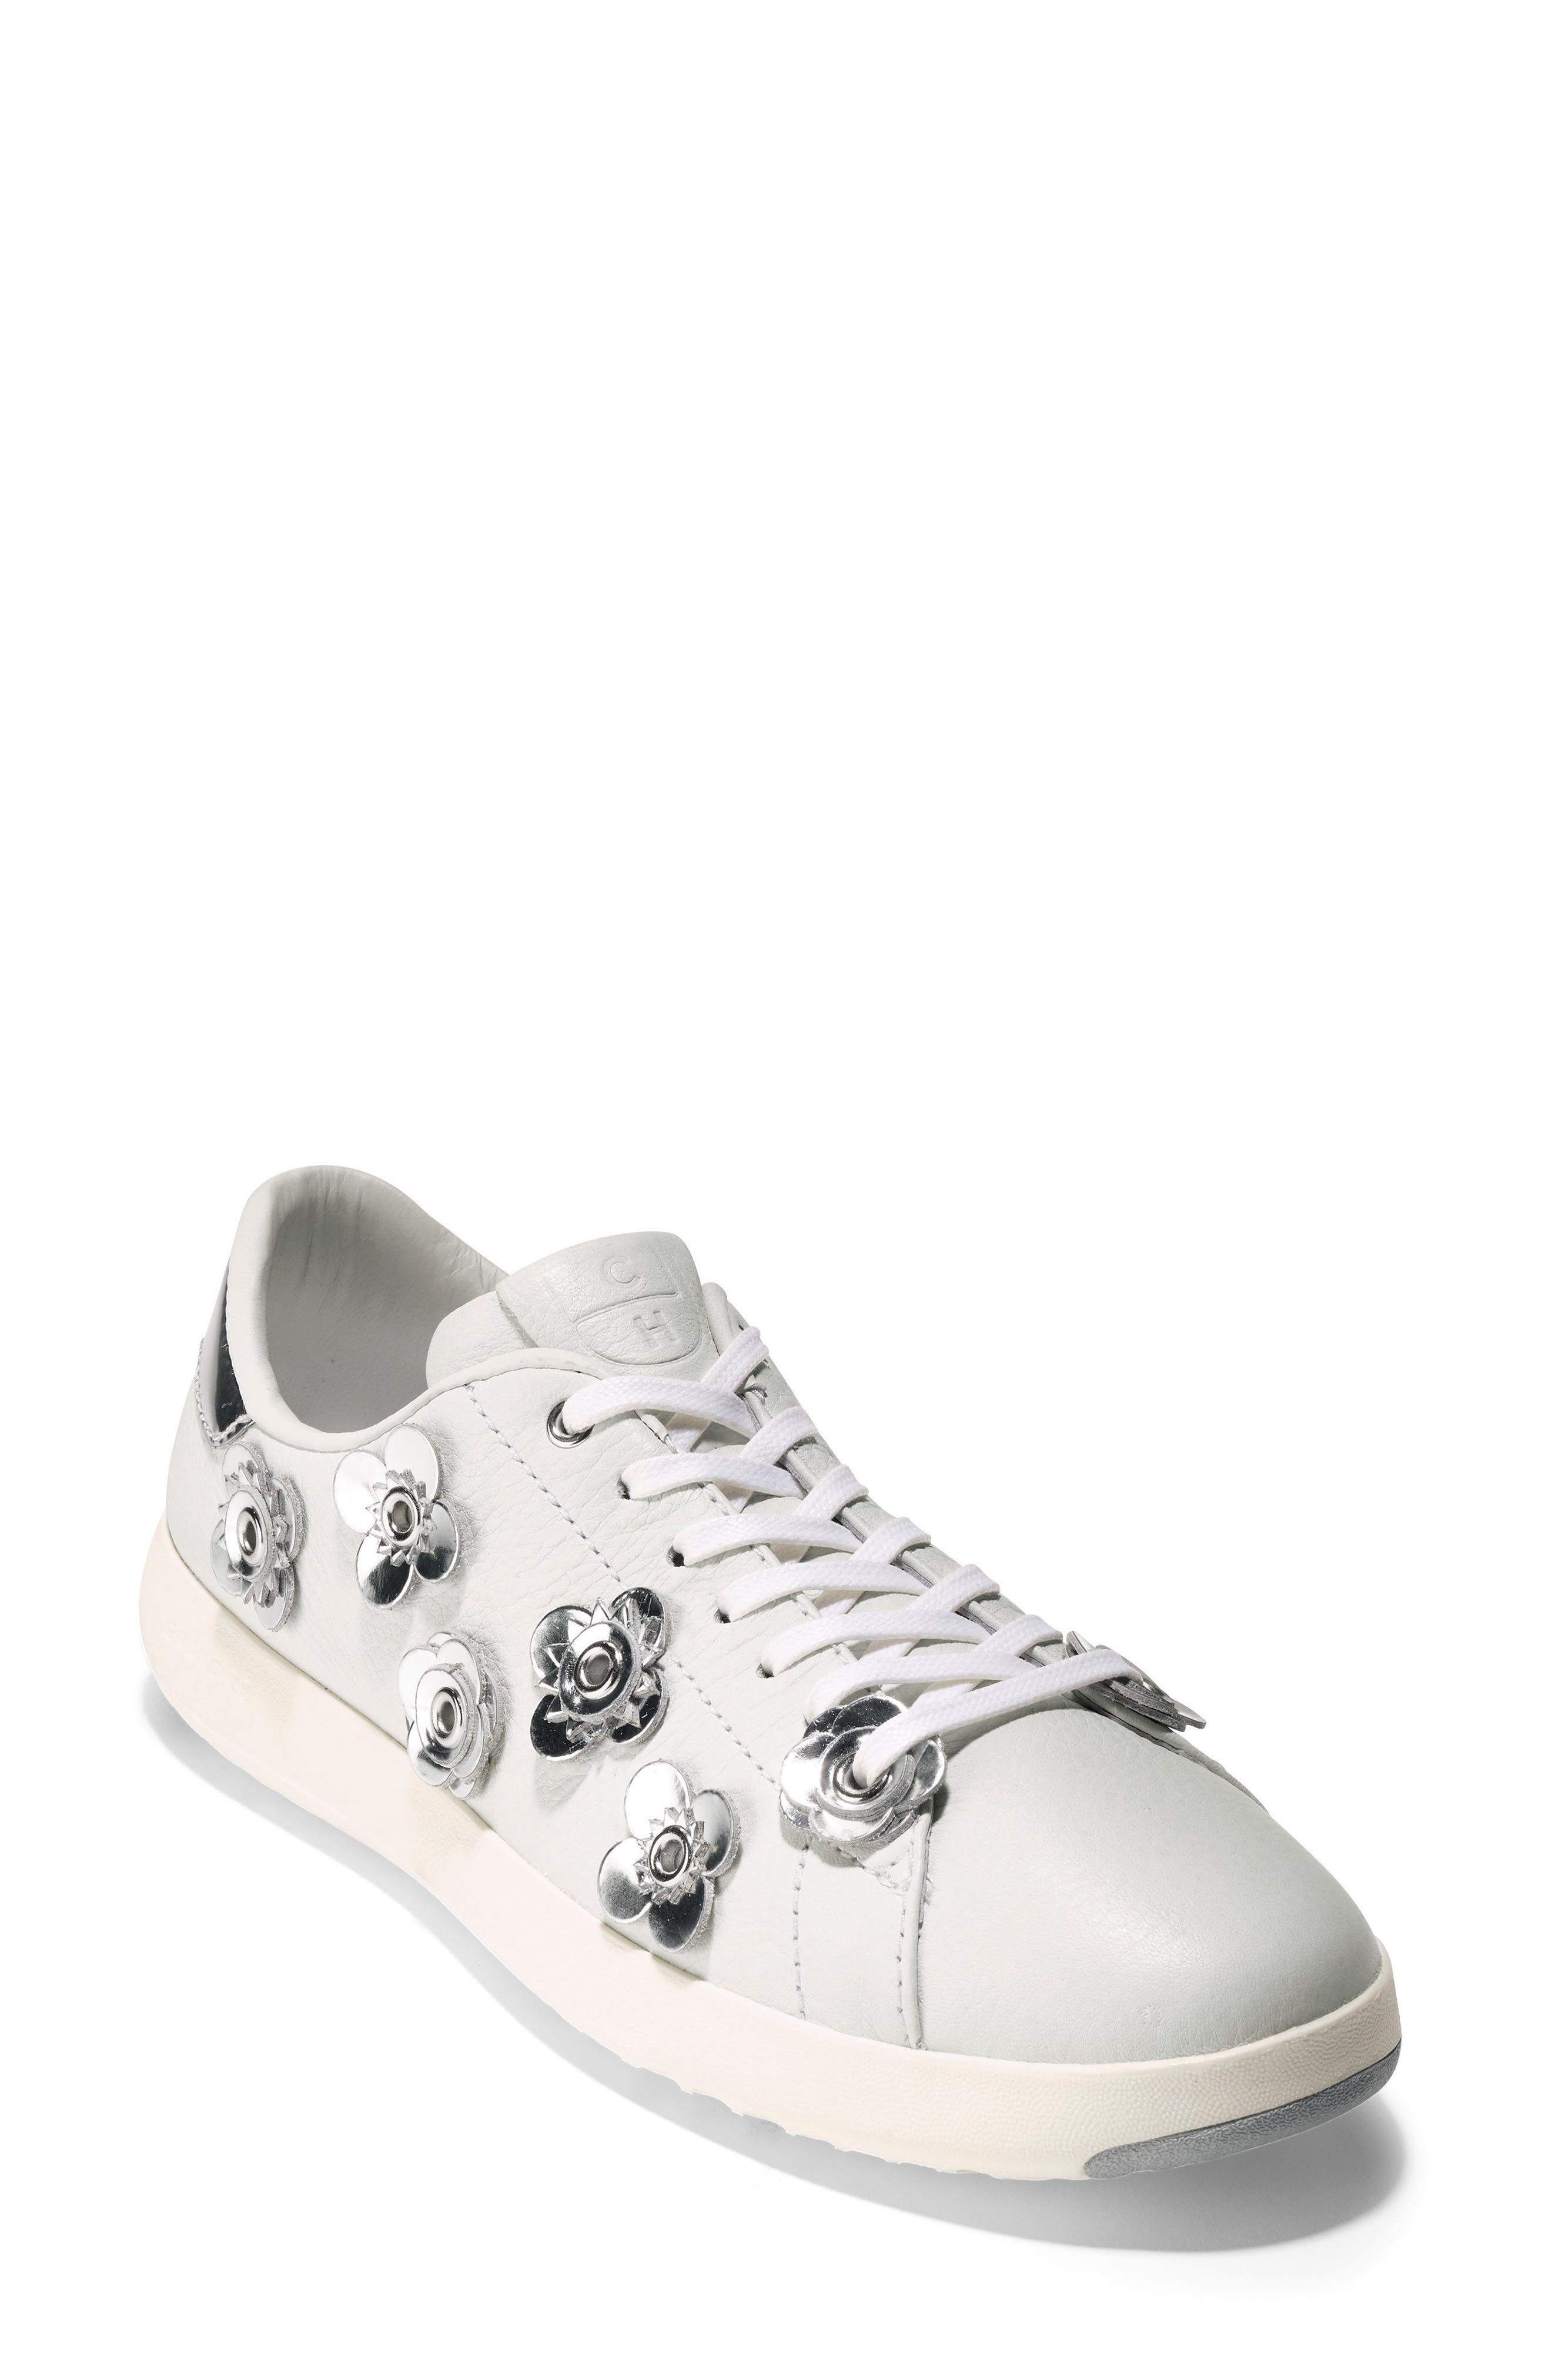 GrandPro Tennis Sneaker,                             Main thumbnail 1, color,                             White Leather